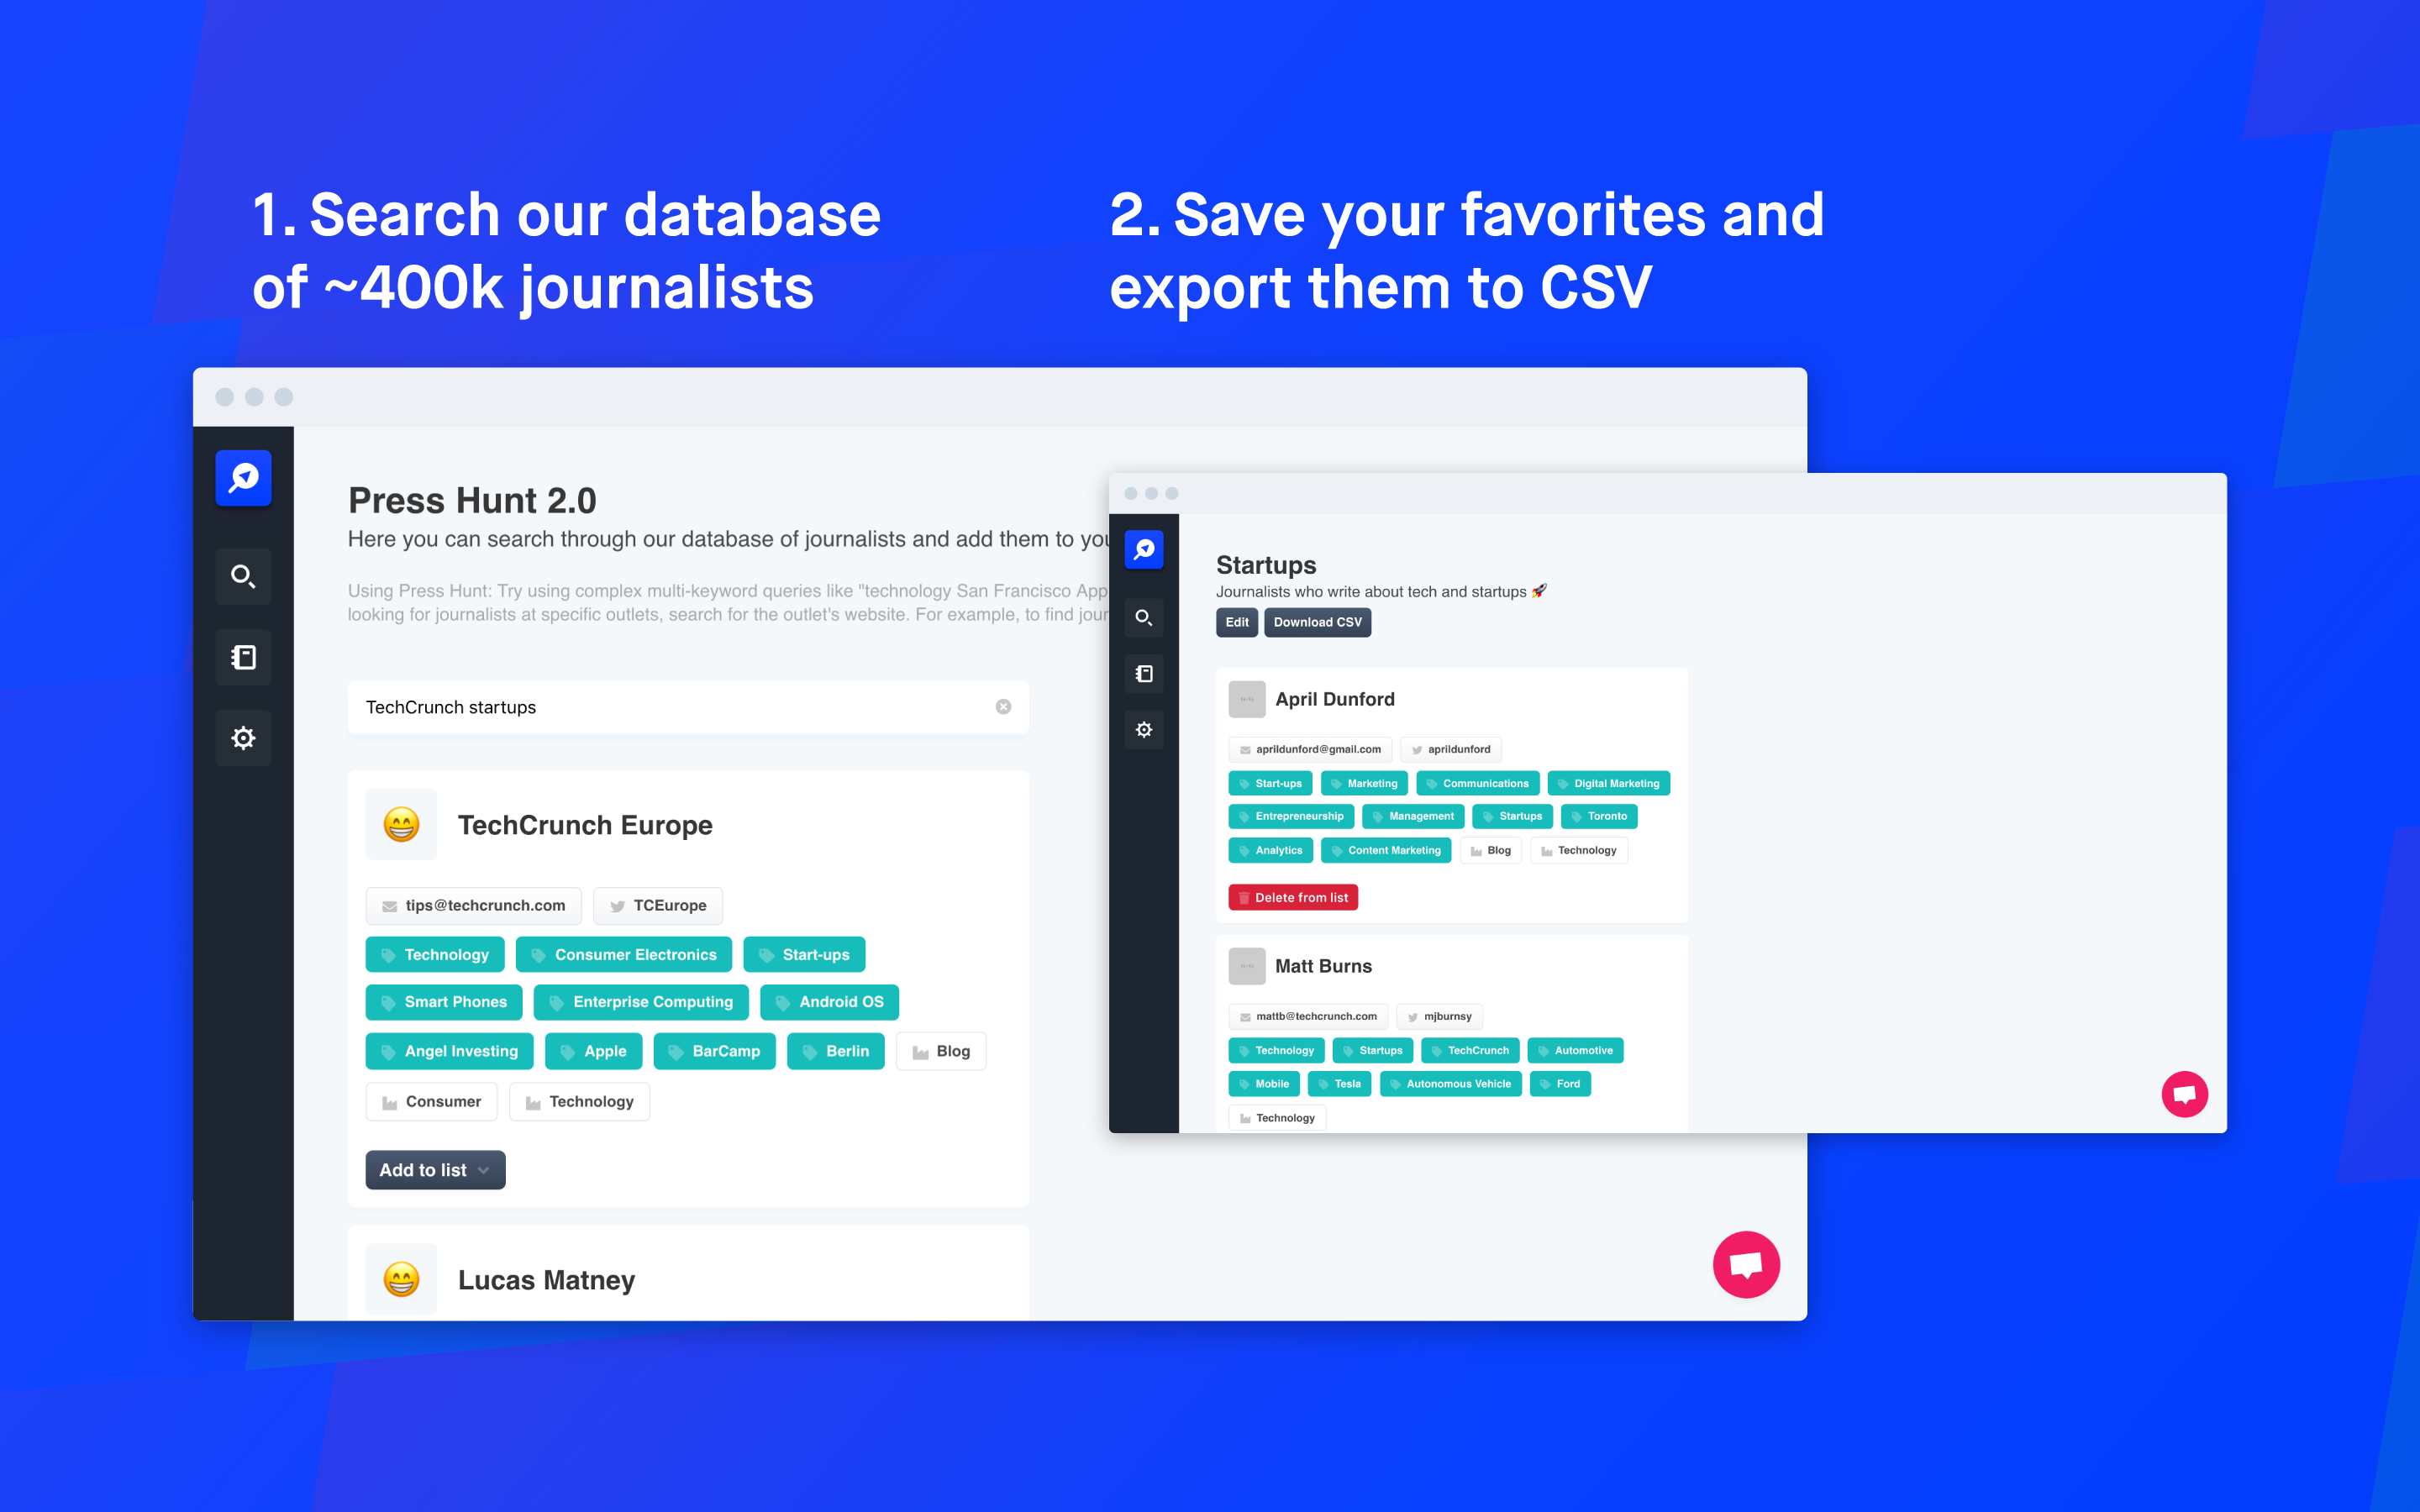 Press Hunt 2.0 - A database of ~400k journalists to feature your business 🤩